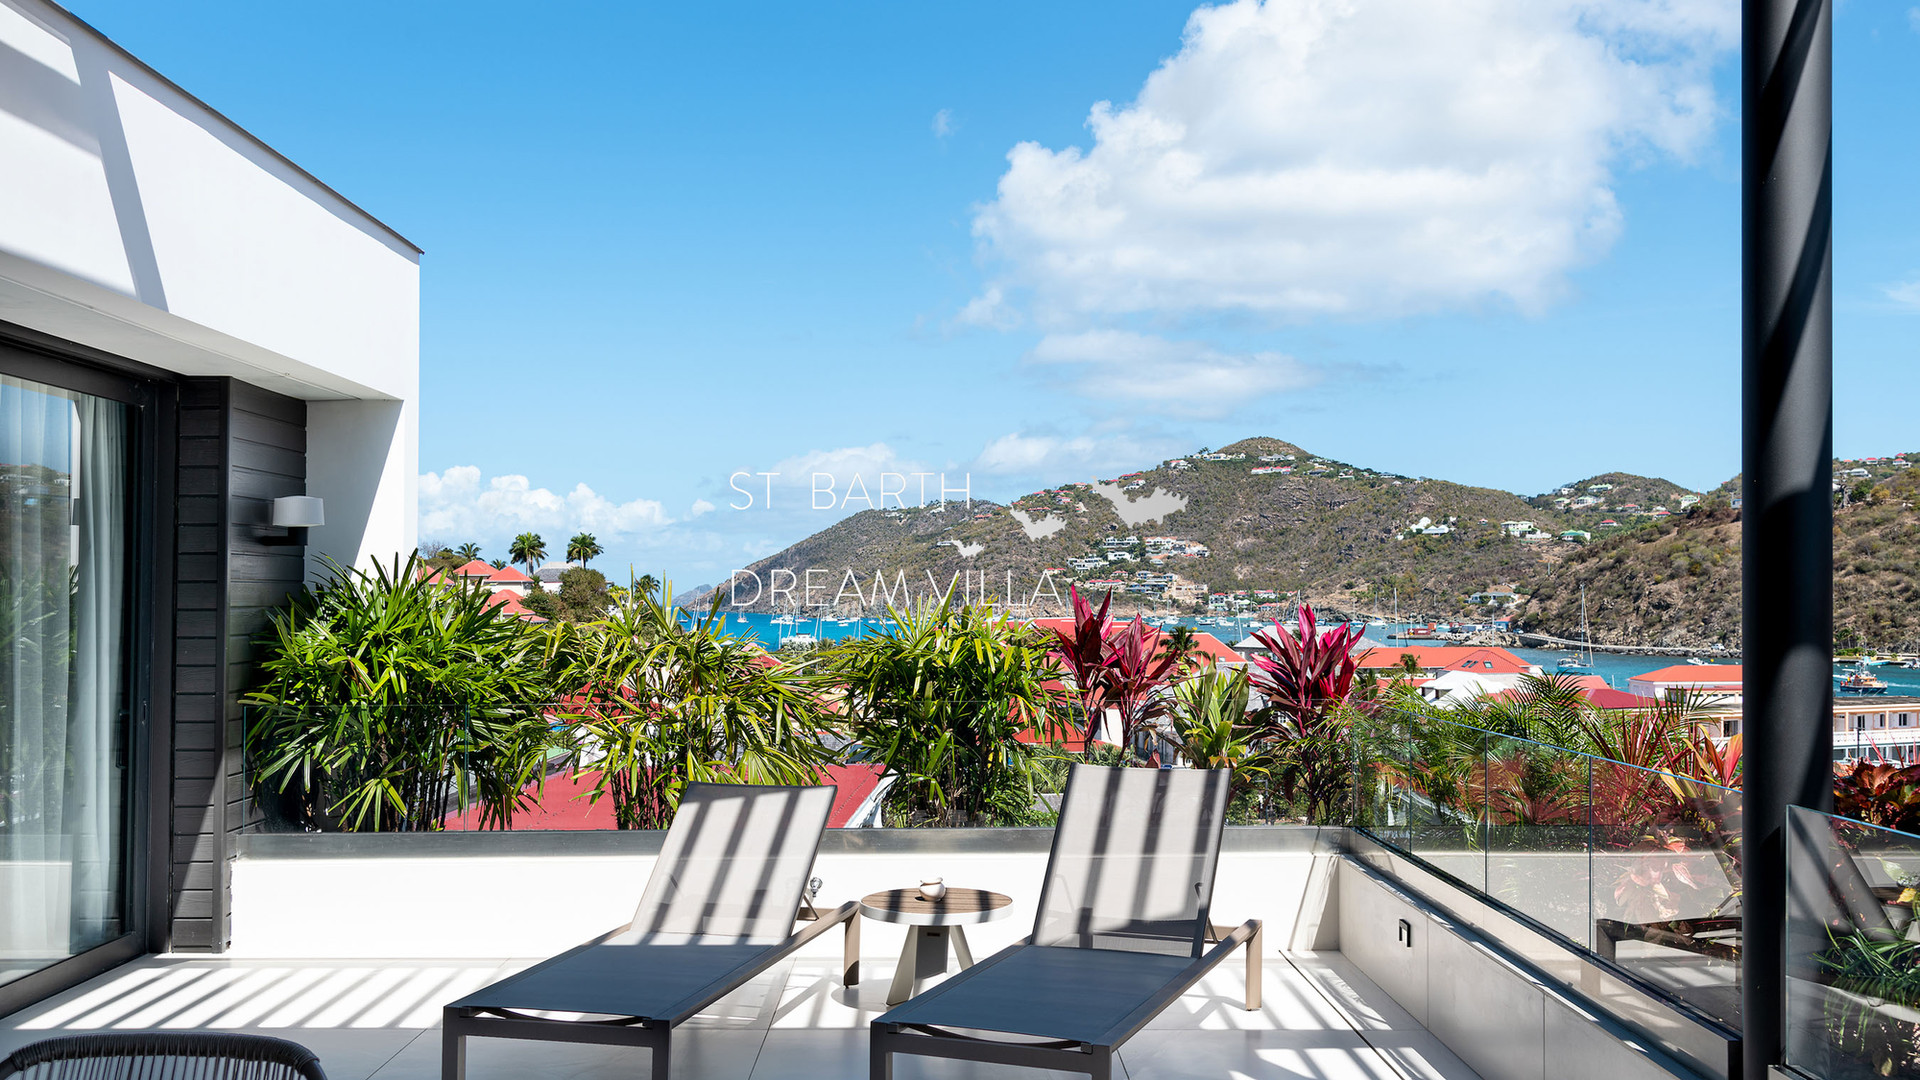 A-OUTDOOR (3)-1800-StBarthDreamVilla-Ren